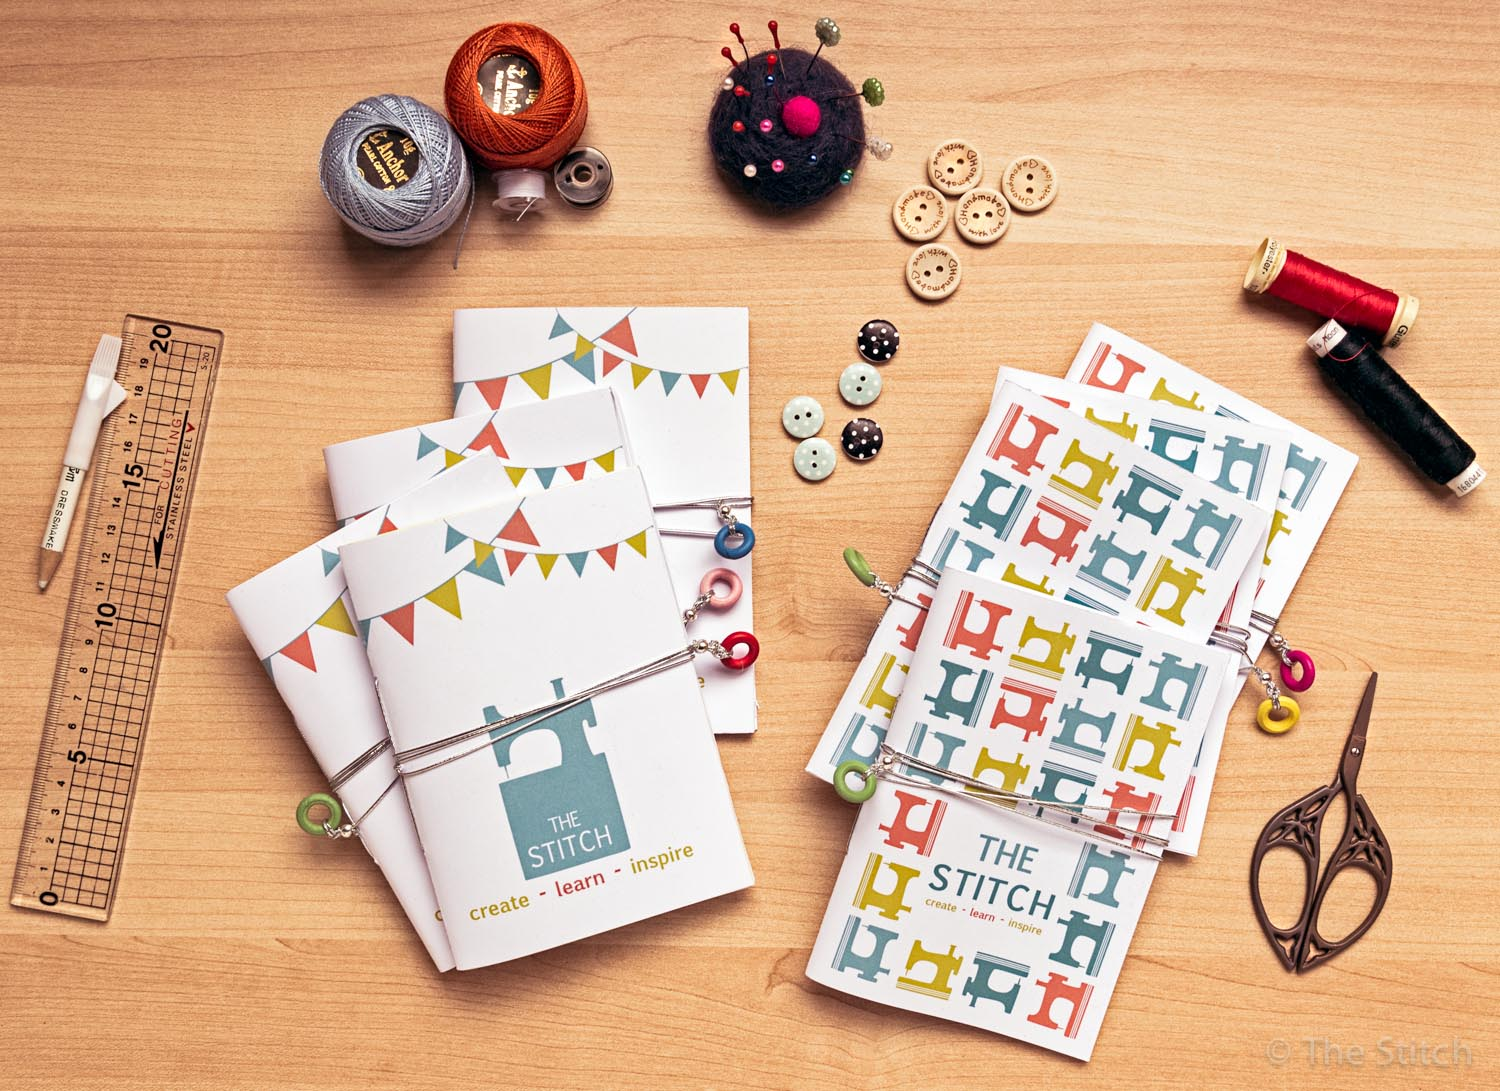 Handmade 'The Stitch' Notebooks for WN Feast Fundraiser